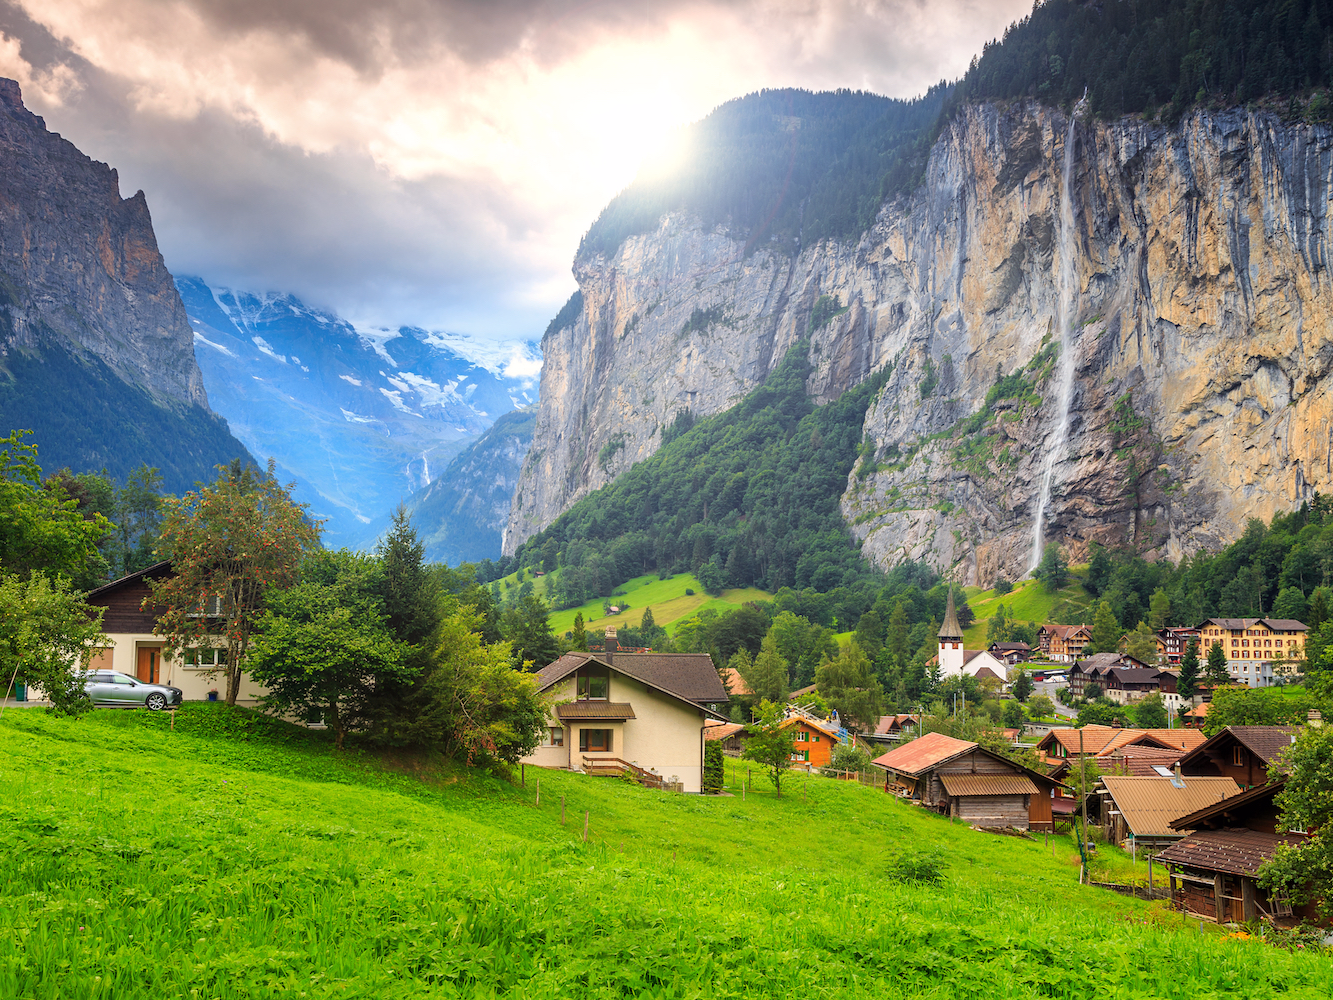 For smaller waterfalls, take a trip to Lauterbrunnen, the site of the Staubach Falls, a narrow waterfall that flows almost 1,000 feet through mountain crevices before dropping onto cliffs that hang over the Lütschine River.